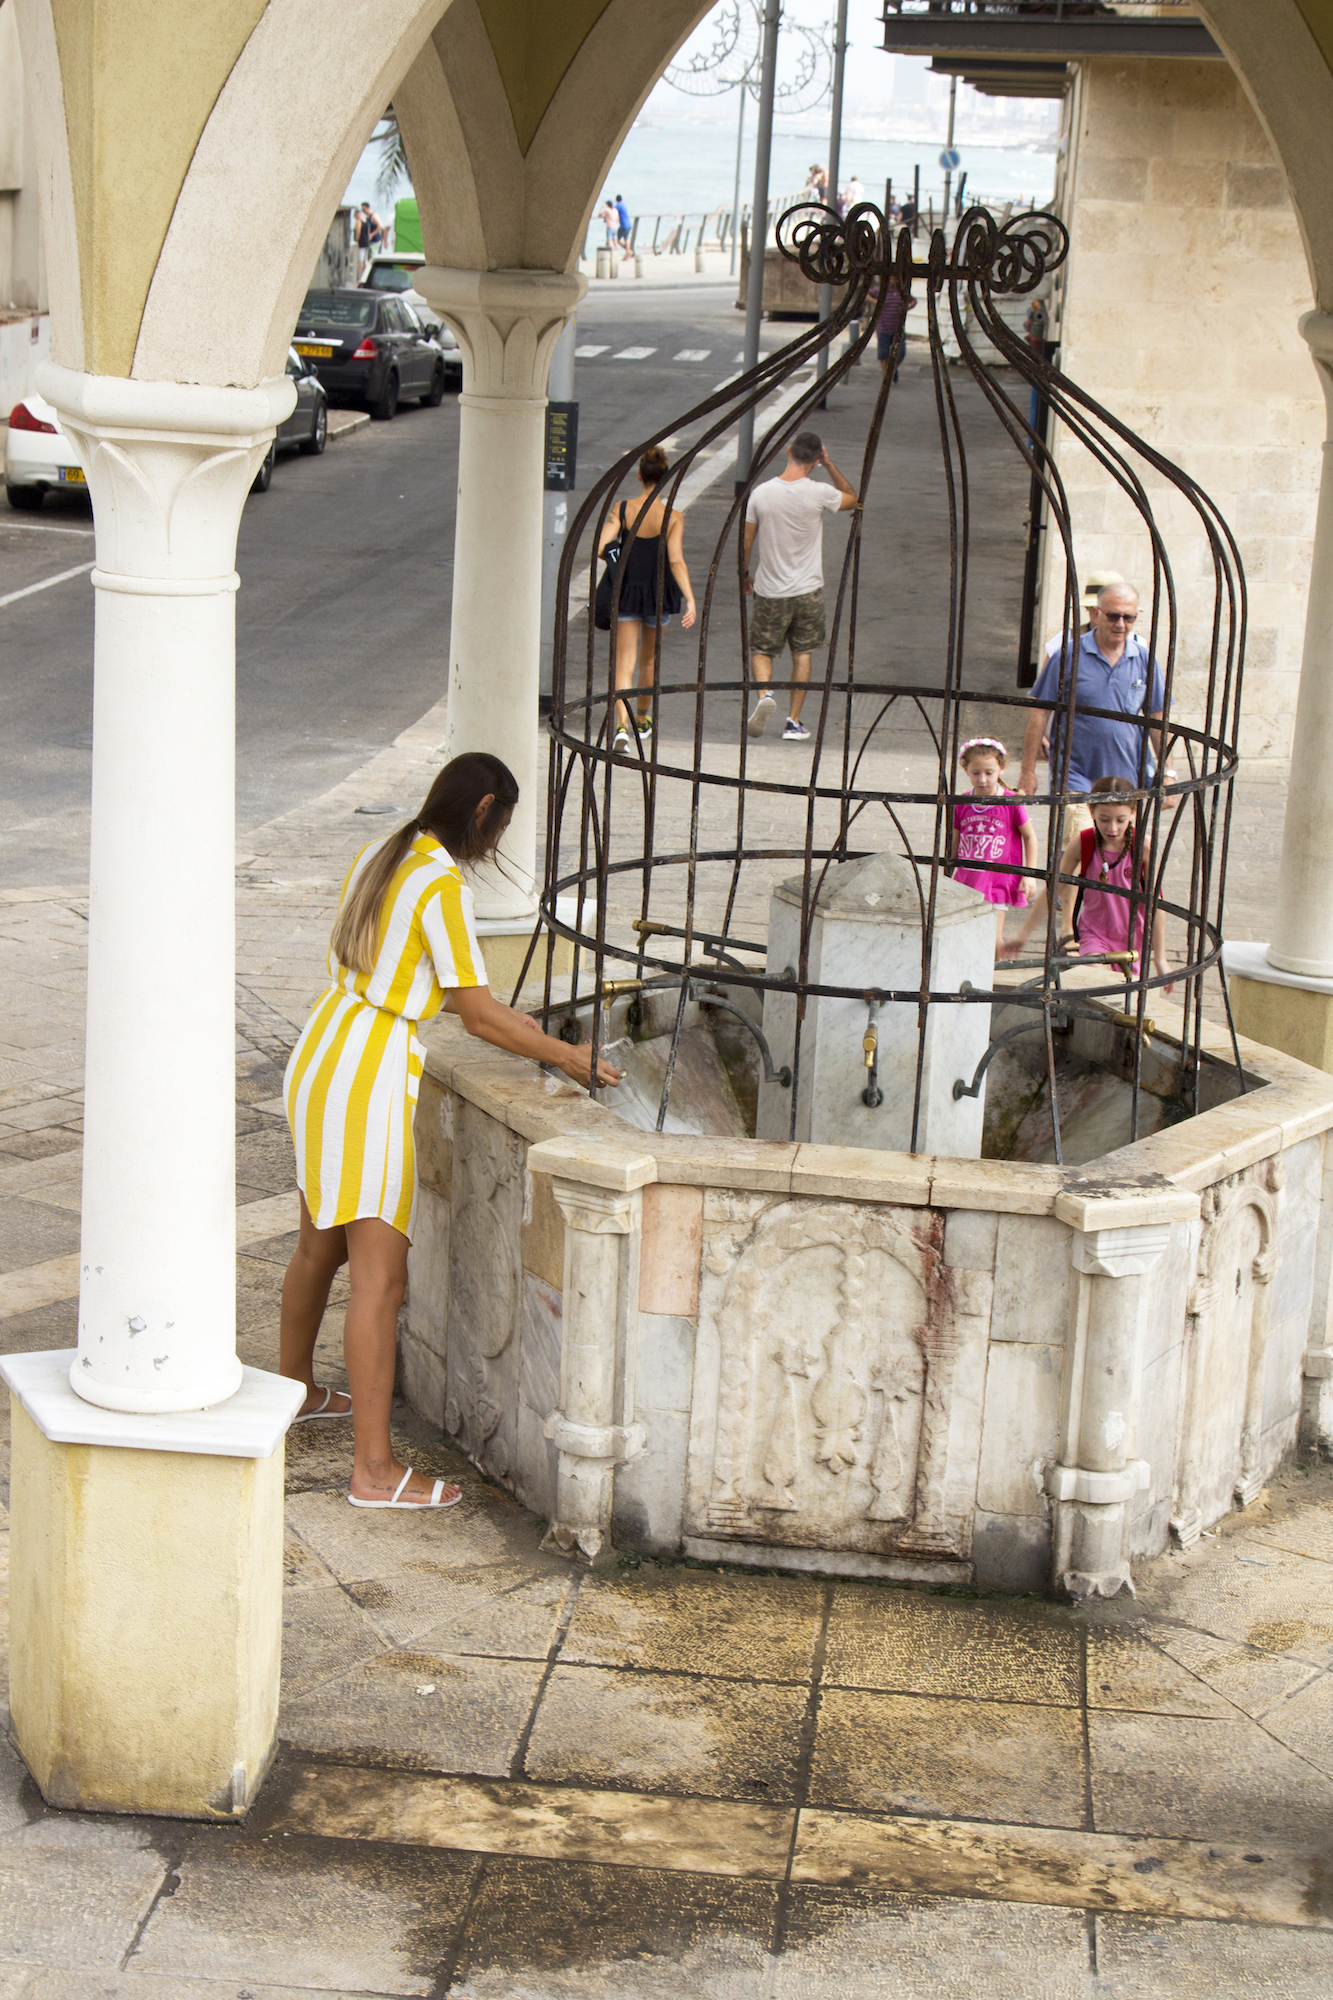 A well in Tel Aviv-Yafo, Israel #travel photography by Geena Matuson @geenamatuson #thegirlmirage at thegirlmirage.com.